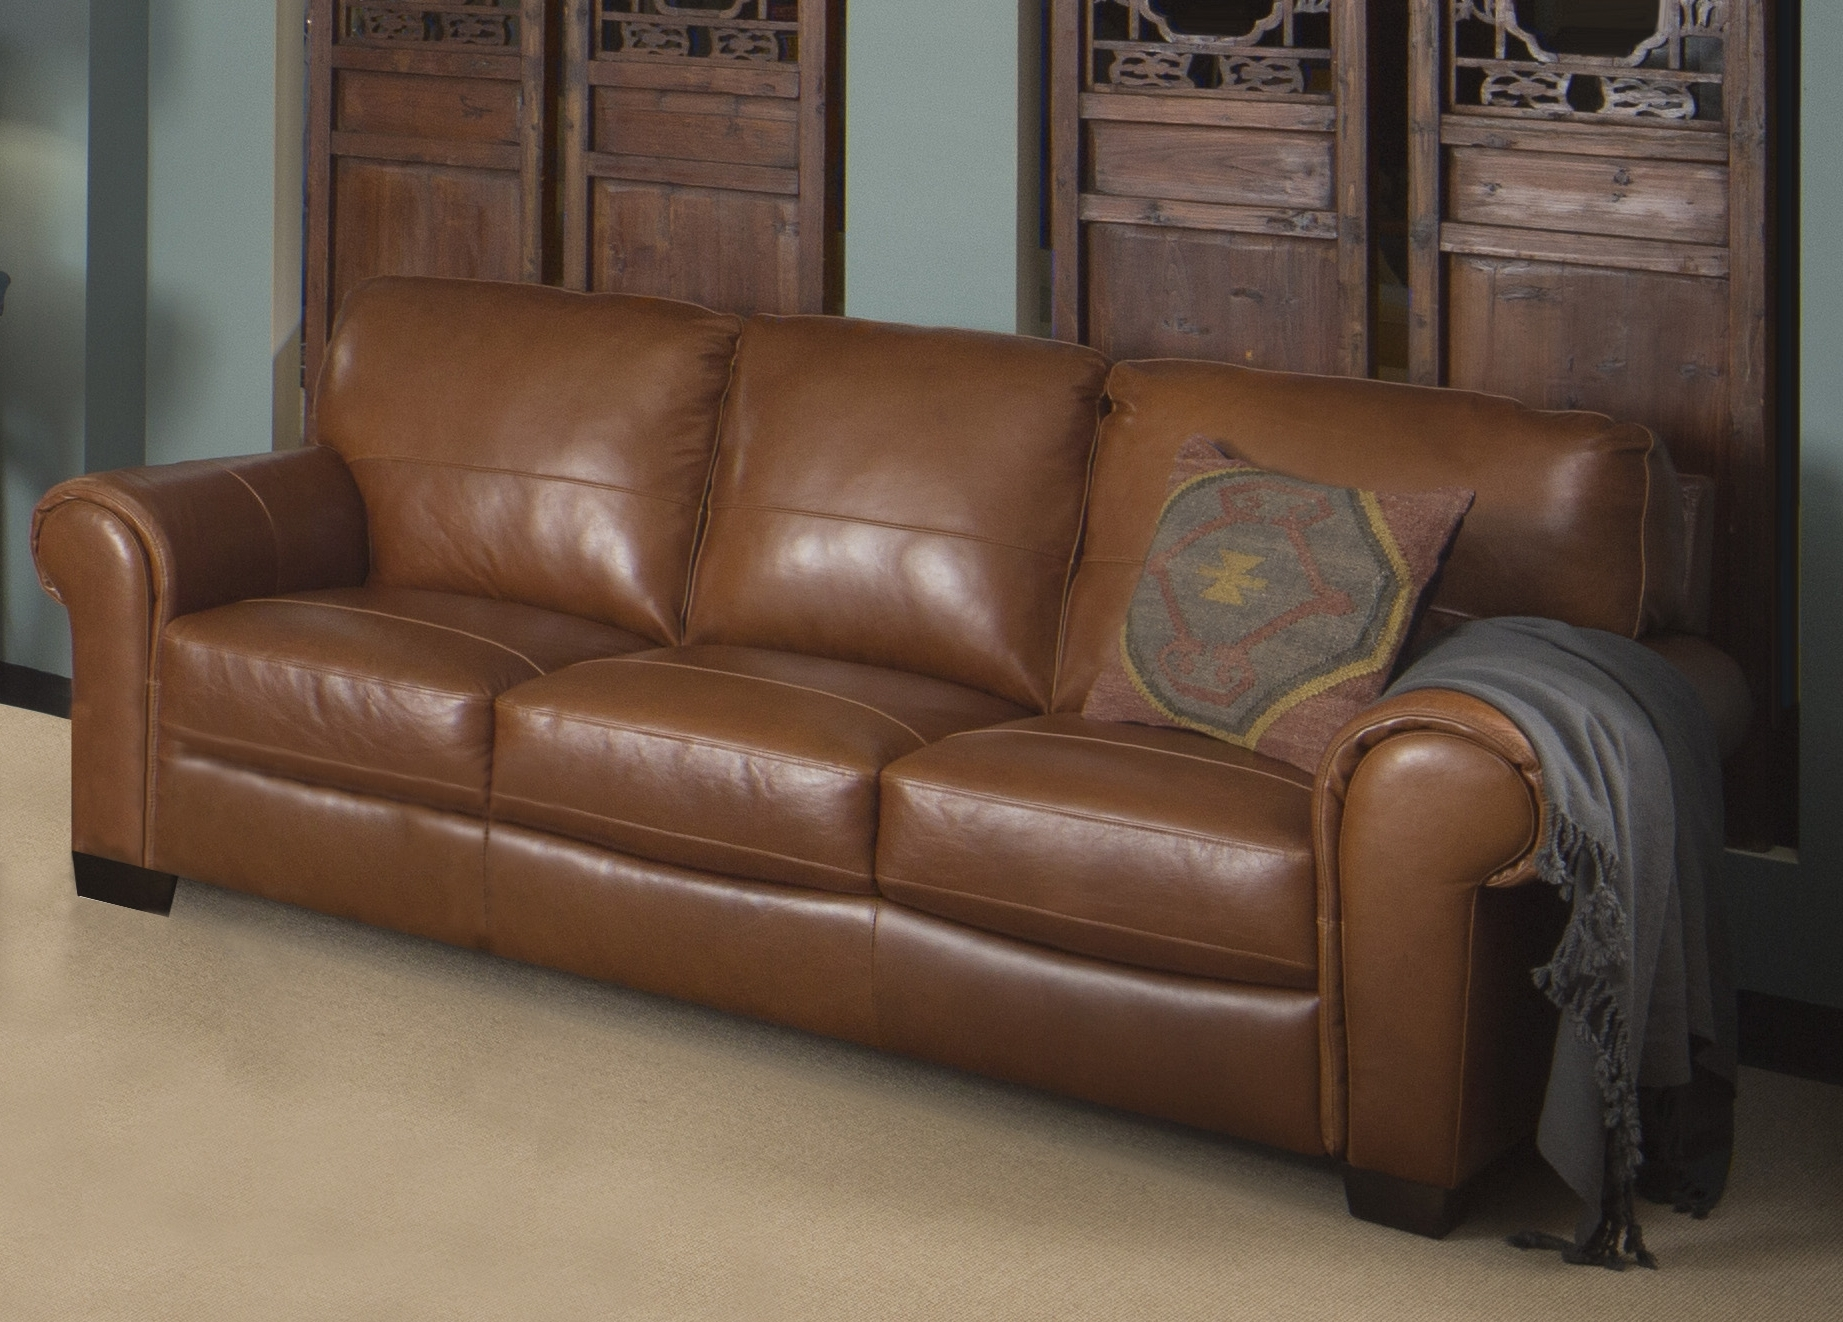 Dining & Living Pertaining To Leather Lounge Sofas (View 2 of 15)